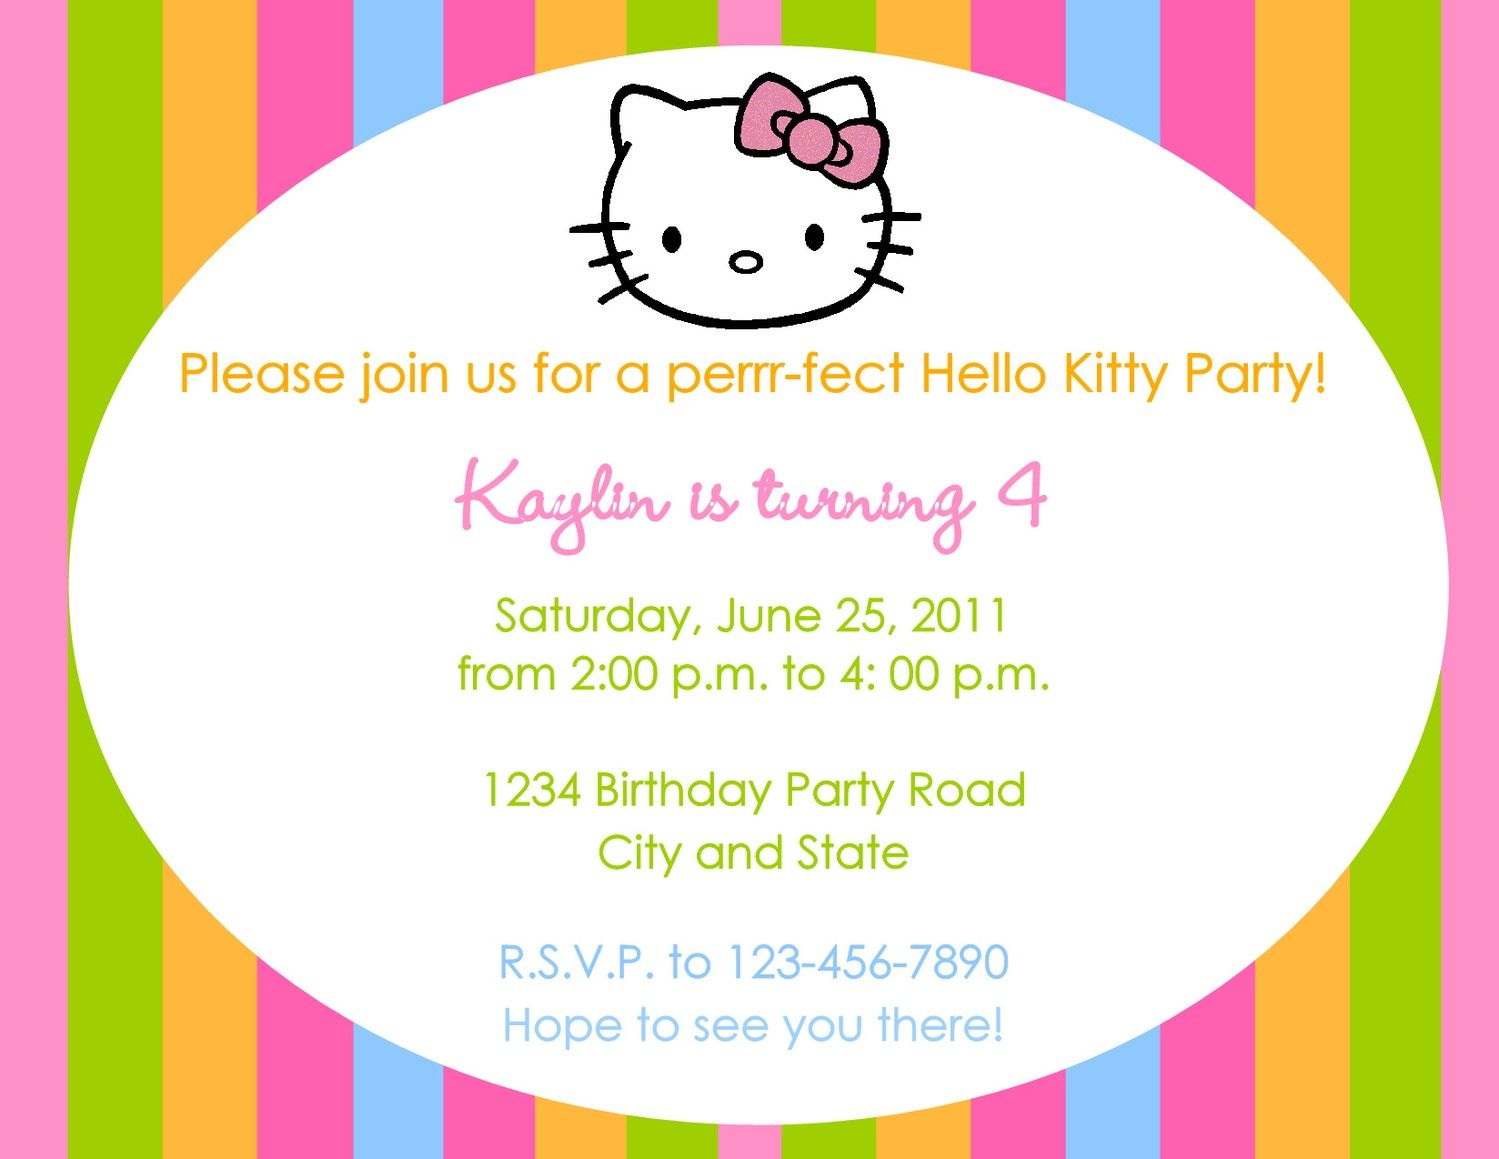 Hello kitty party invitations free template party pinterest hello kitty party invitations free template filmwisefo Choice Image